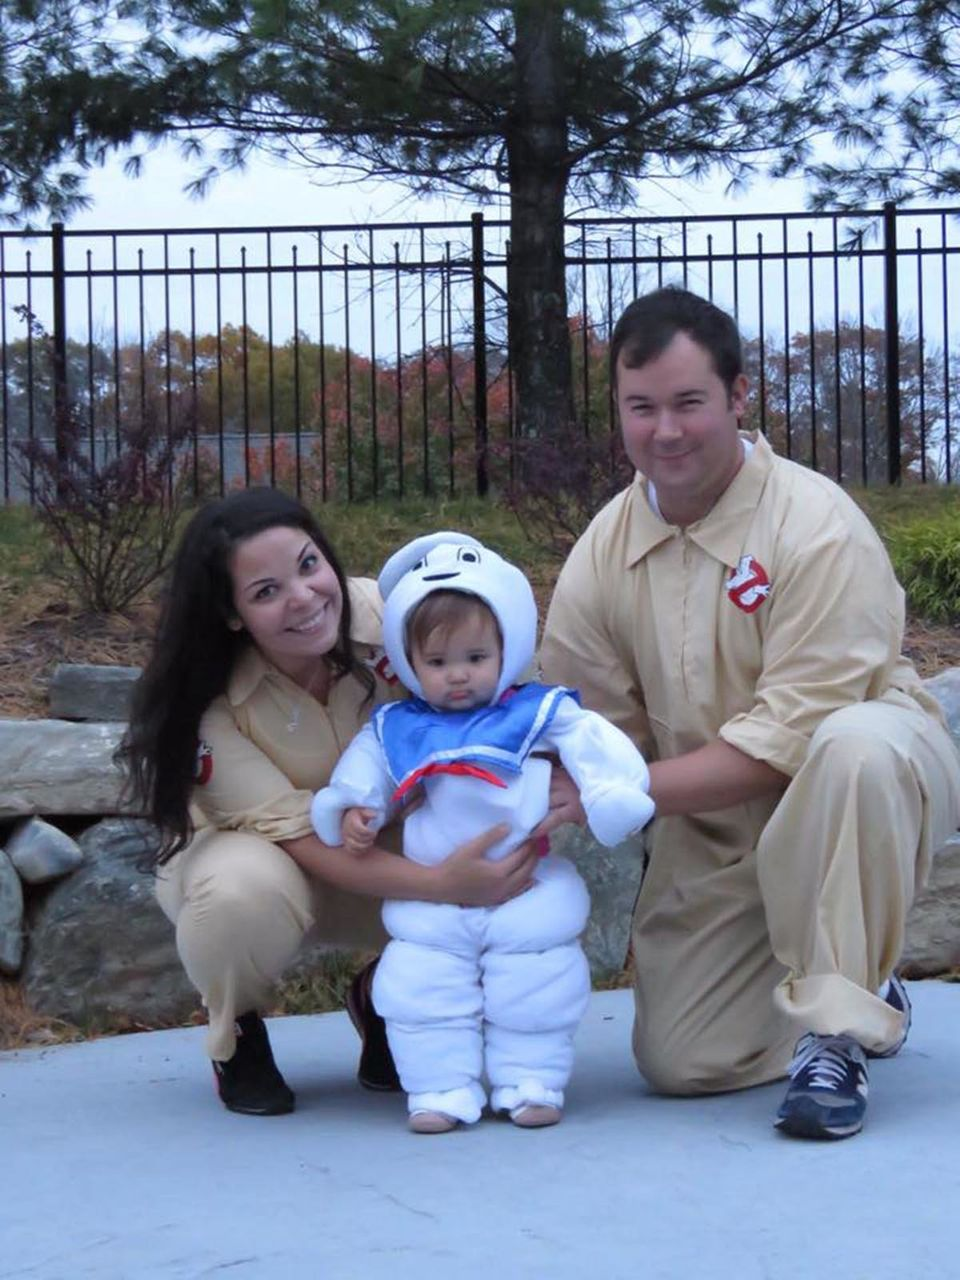 Halloween Costume Ideas For Family Of 3.59 Family Halloween Costumes That Are Clever Cool And Extra Cute